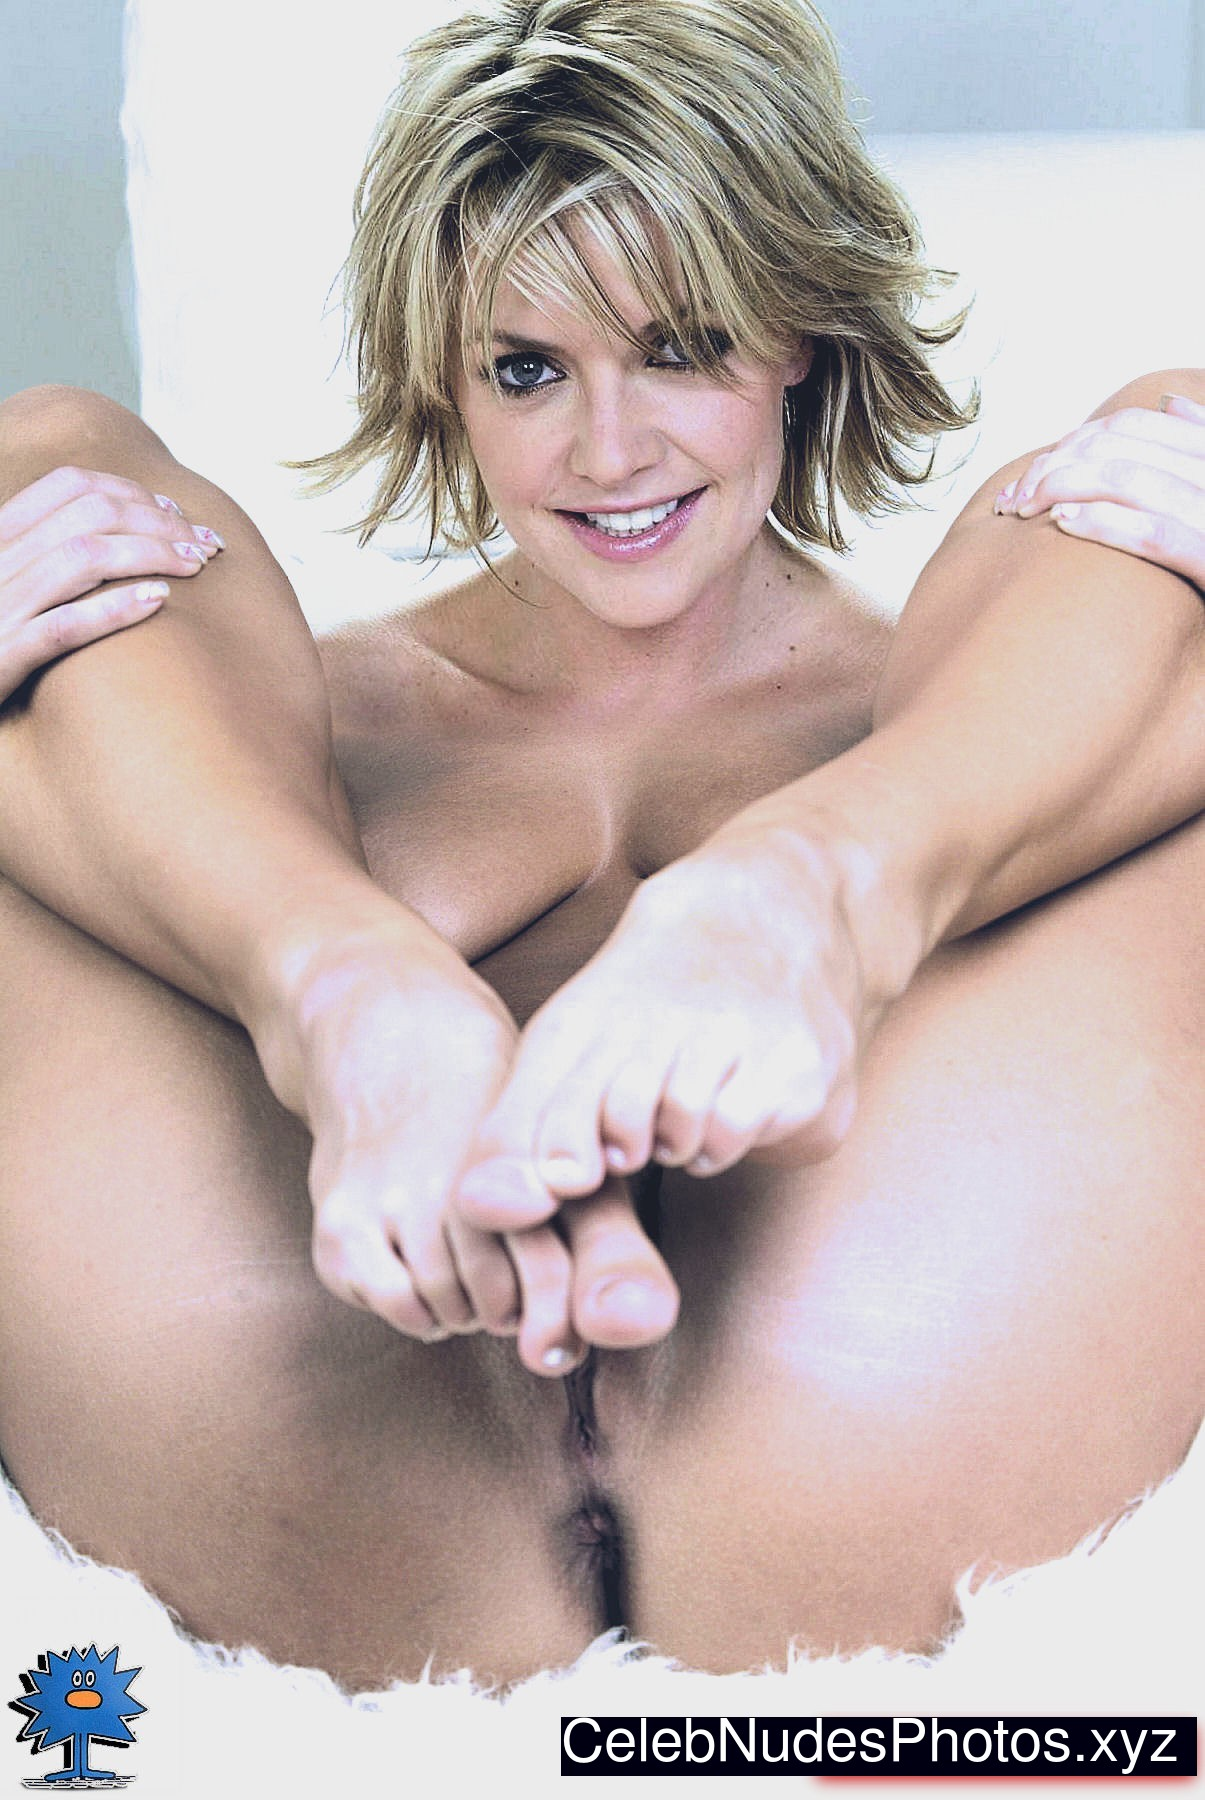 Excellent nude amanda tapping can look